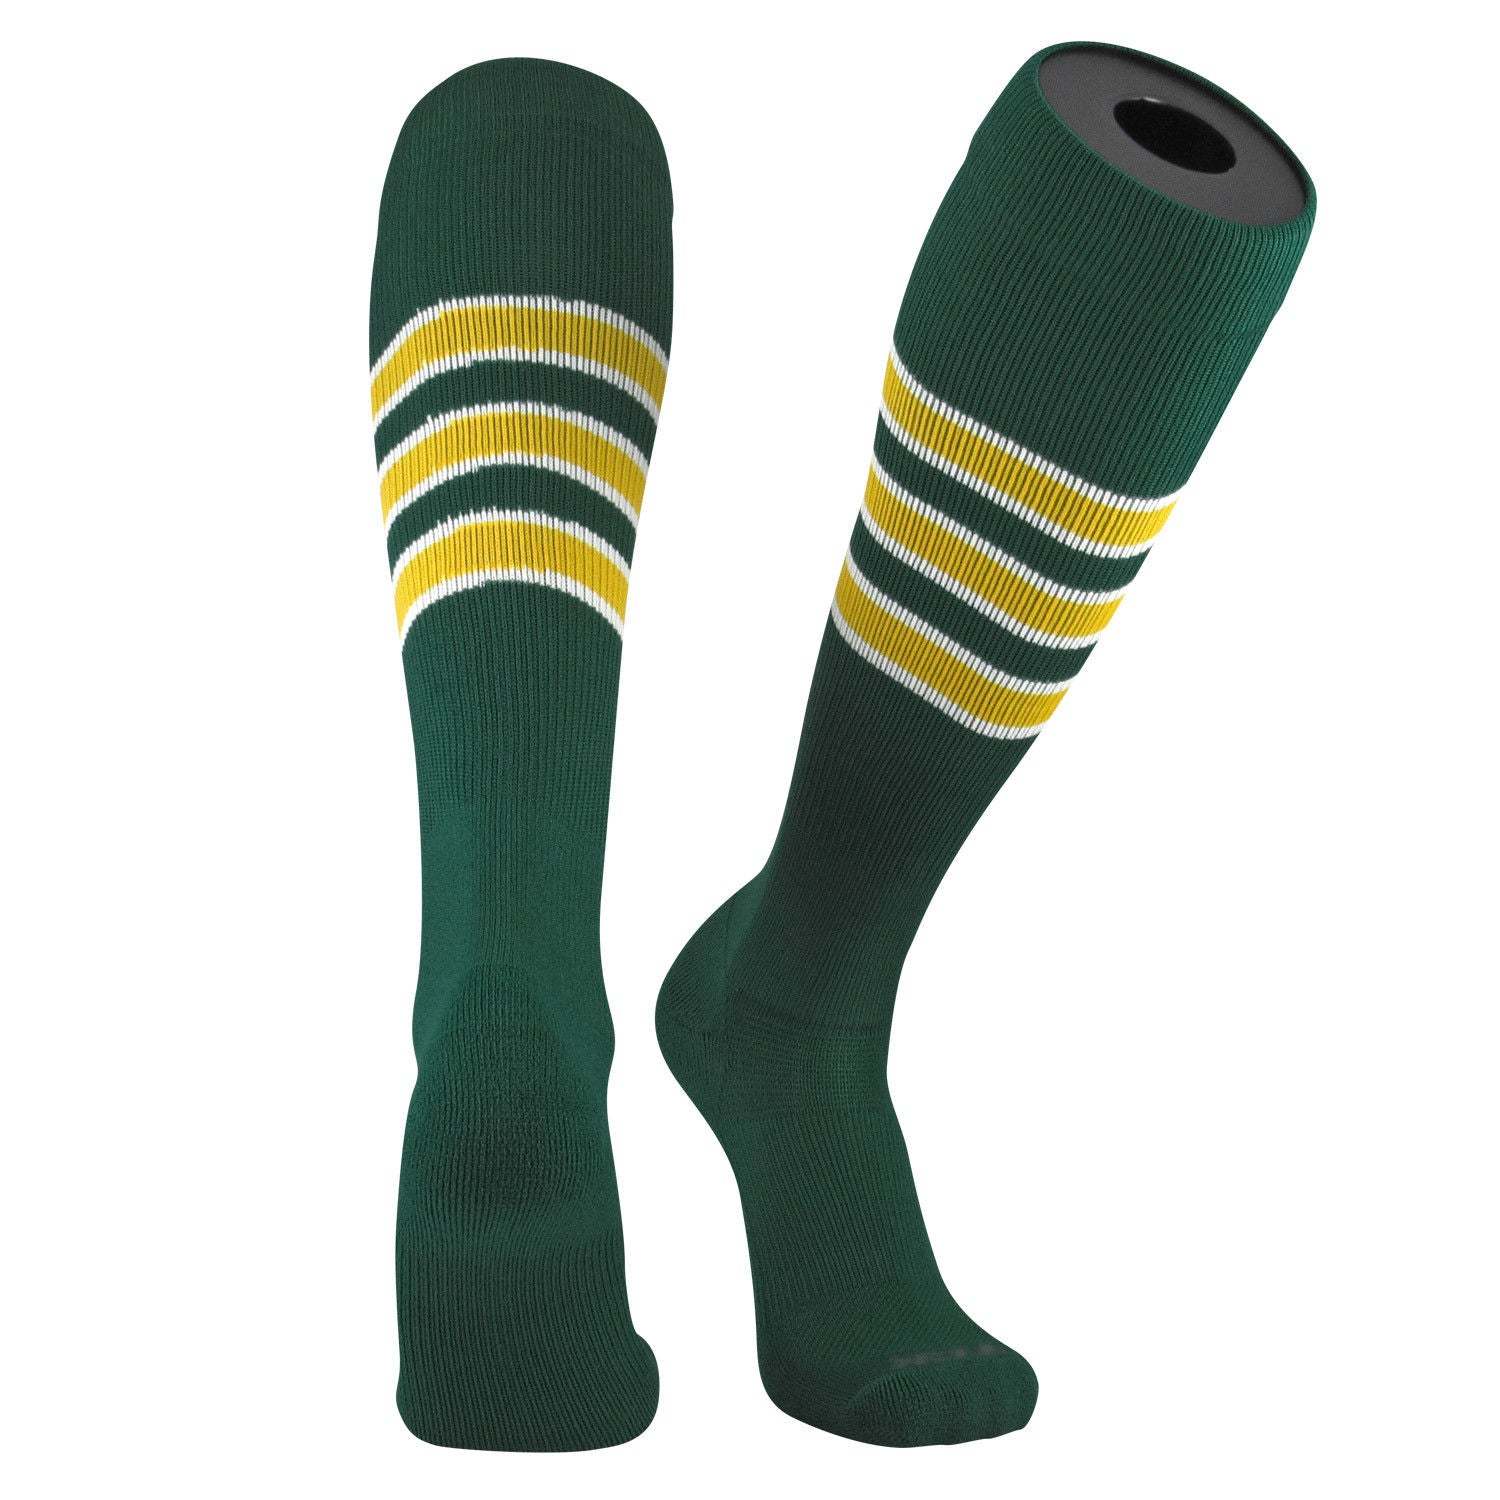 TCK Pro Elite Oakland Dark Green, White, Gold Knee-High Long Striped Socks